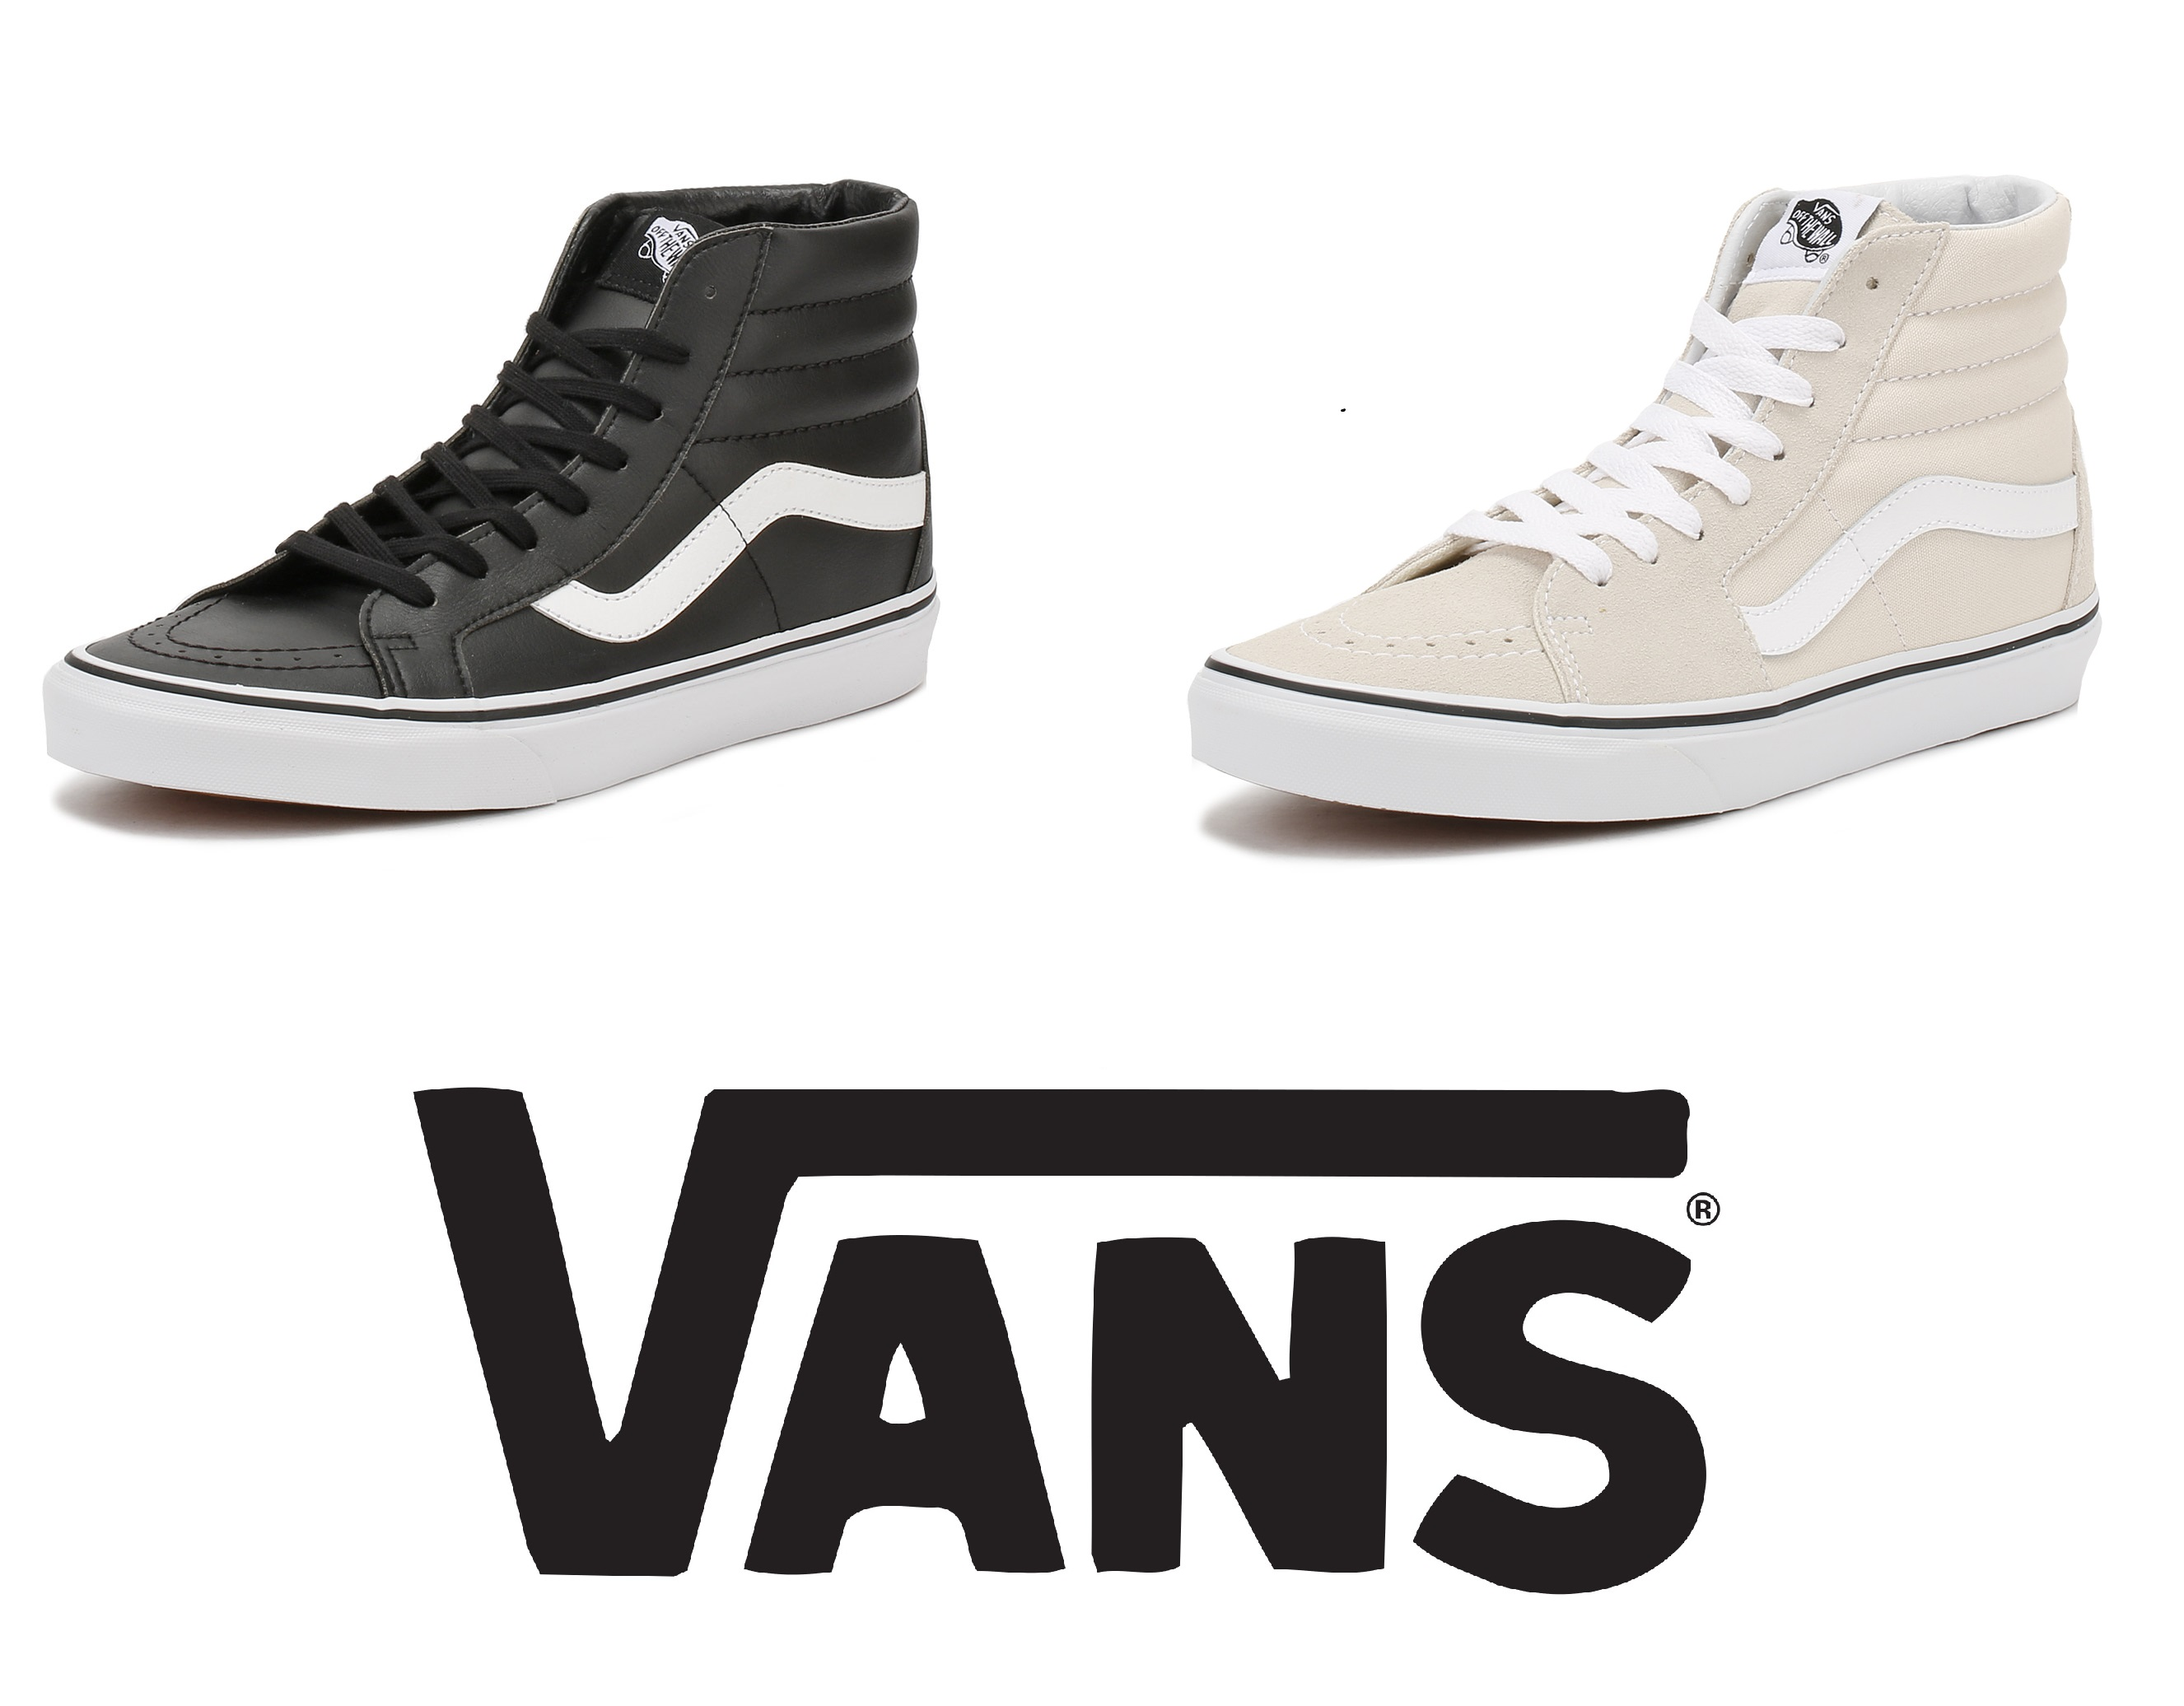 62b6ea698d58bb ... padded ankle and a Vans vulcanised signature Waffle out sole. It is  insulated with warm fleecy lining to provide extra warmth and comfort for  your feet.